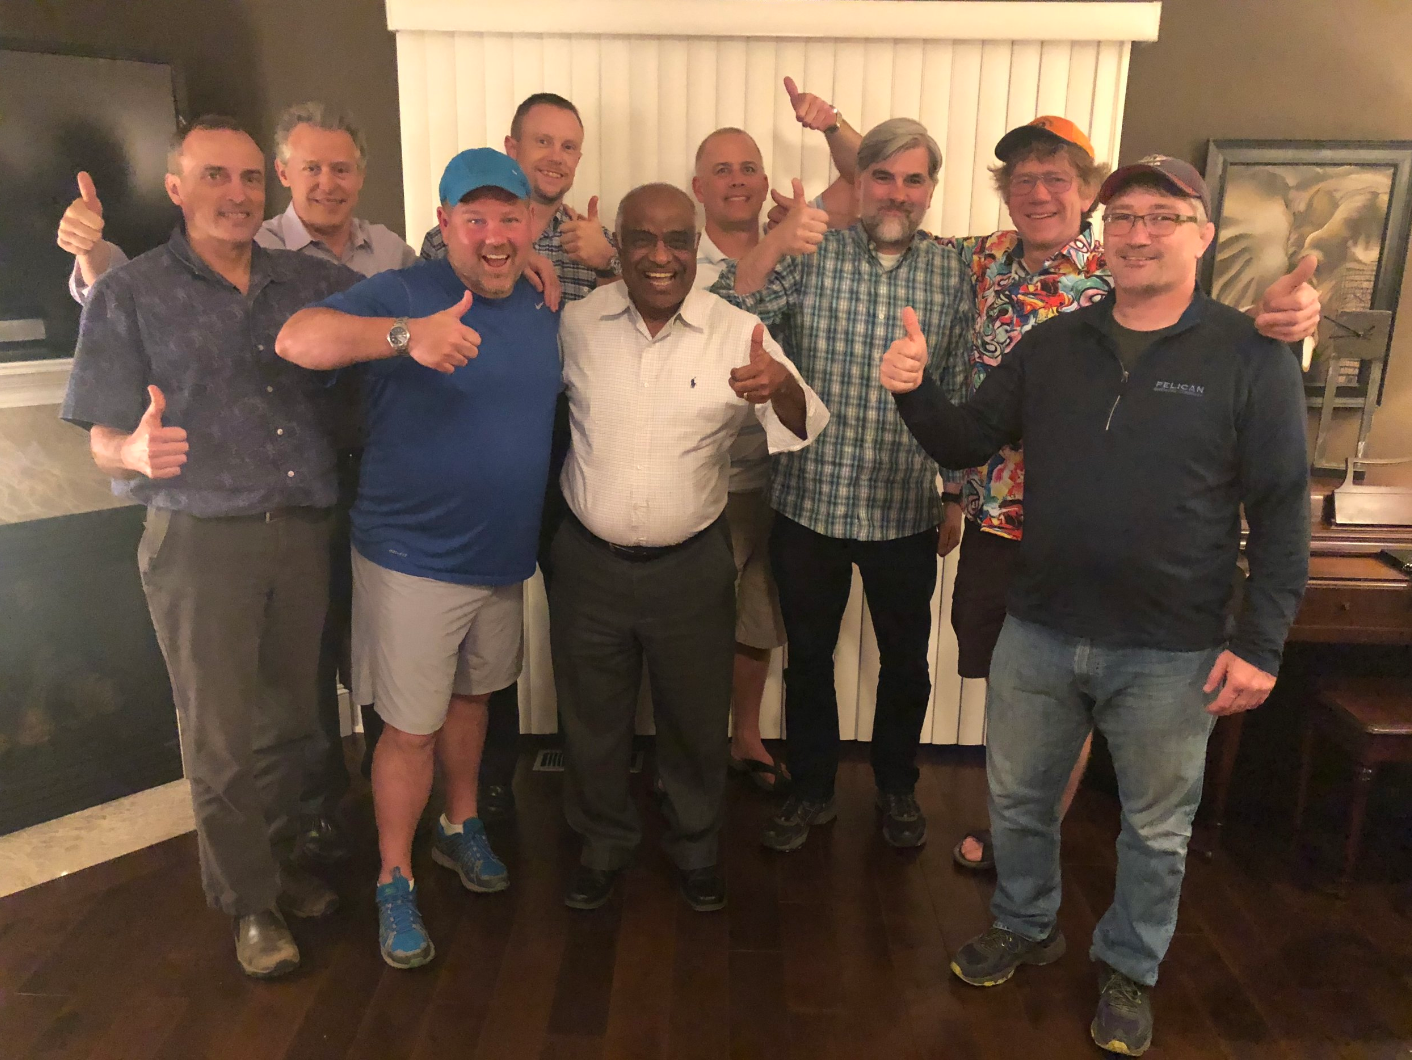 The   Abba Project 9  is again a diverse group who, by the end, have become brothers. Though three dads weren't able to be in the group picture, it's clear to see the bond and connection these men have with each other after being in the trenches together!